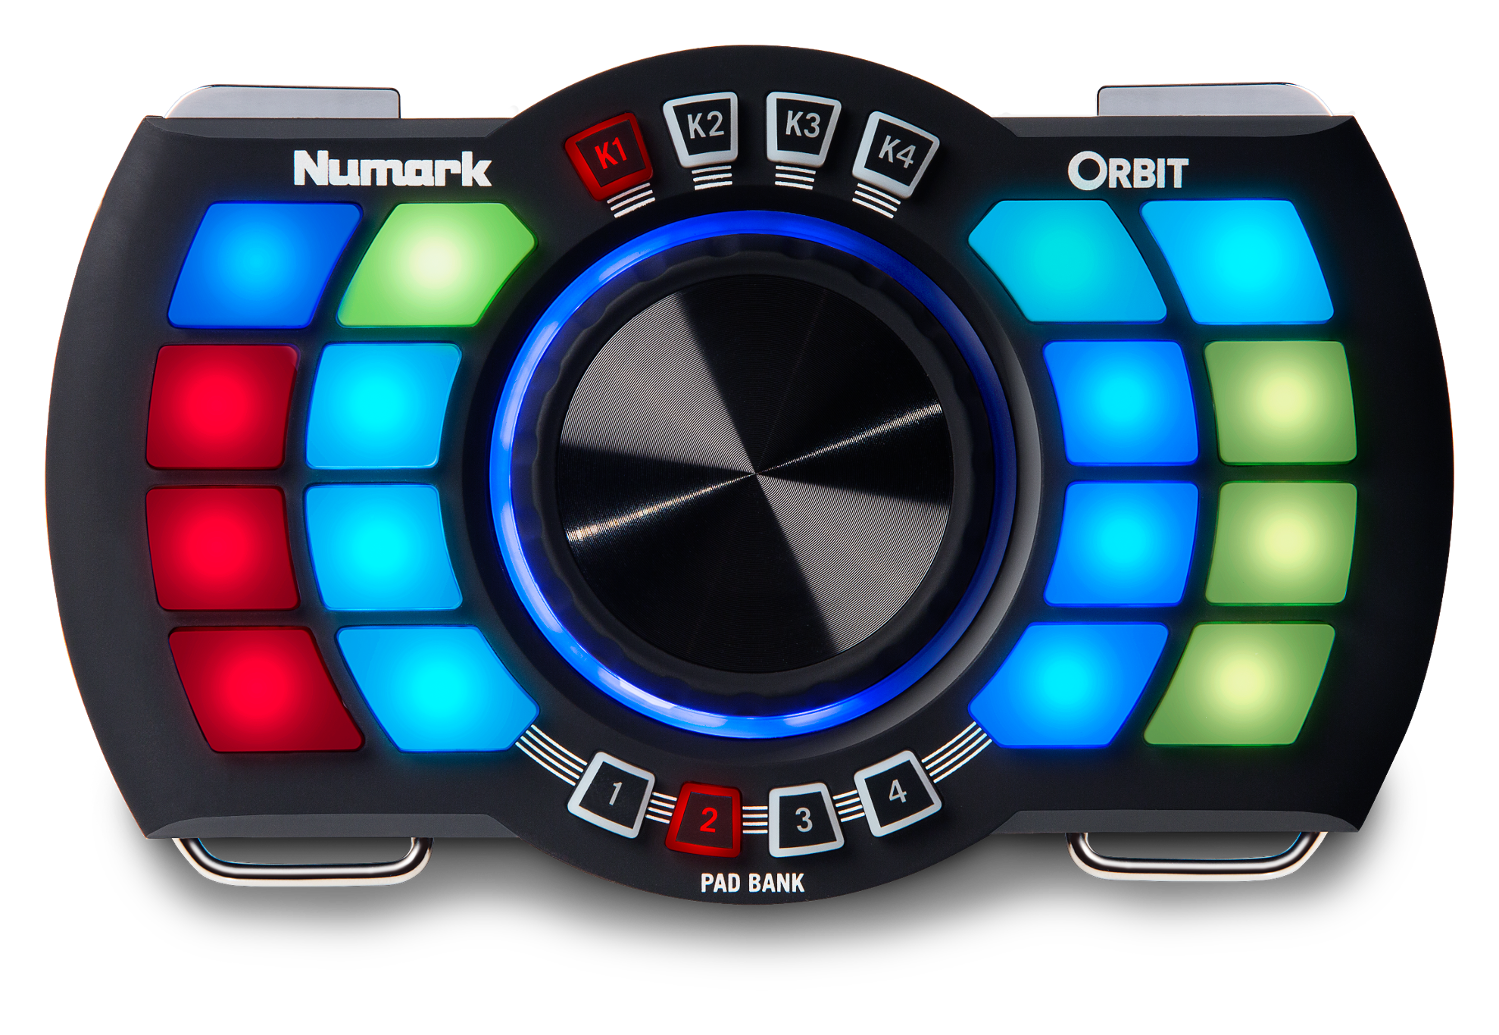 numark orbit main